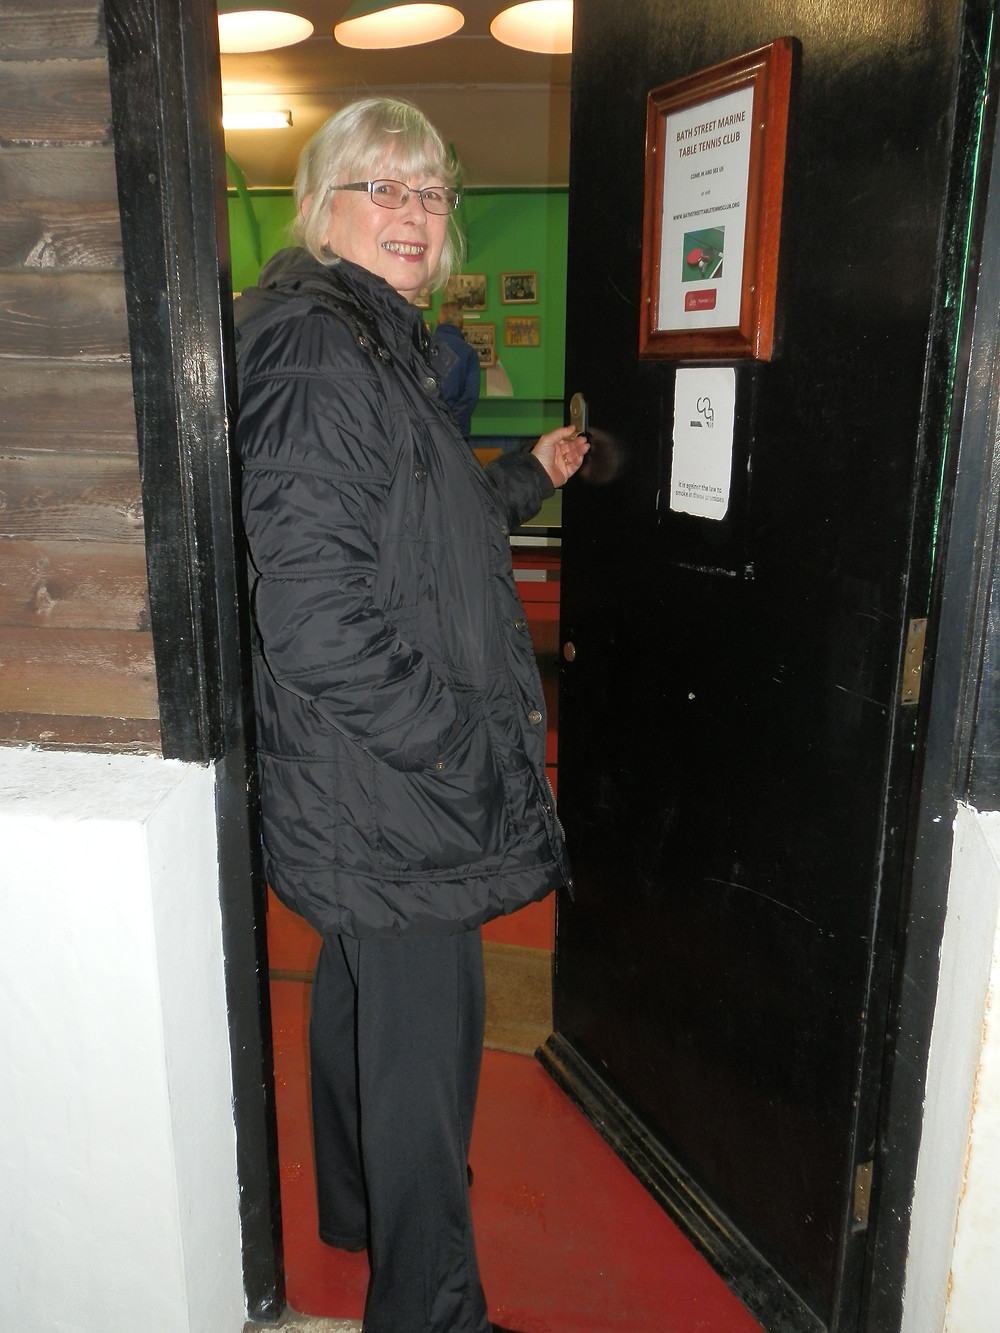 F Team Captain Mary Delamere, arrives at Marine on foot for her League match.